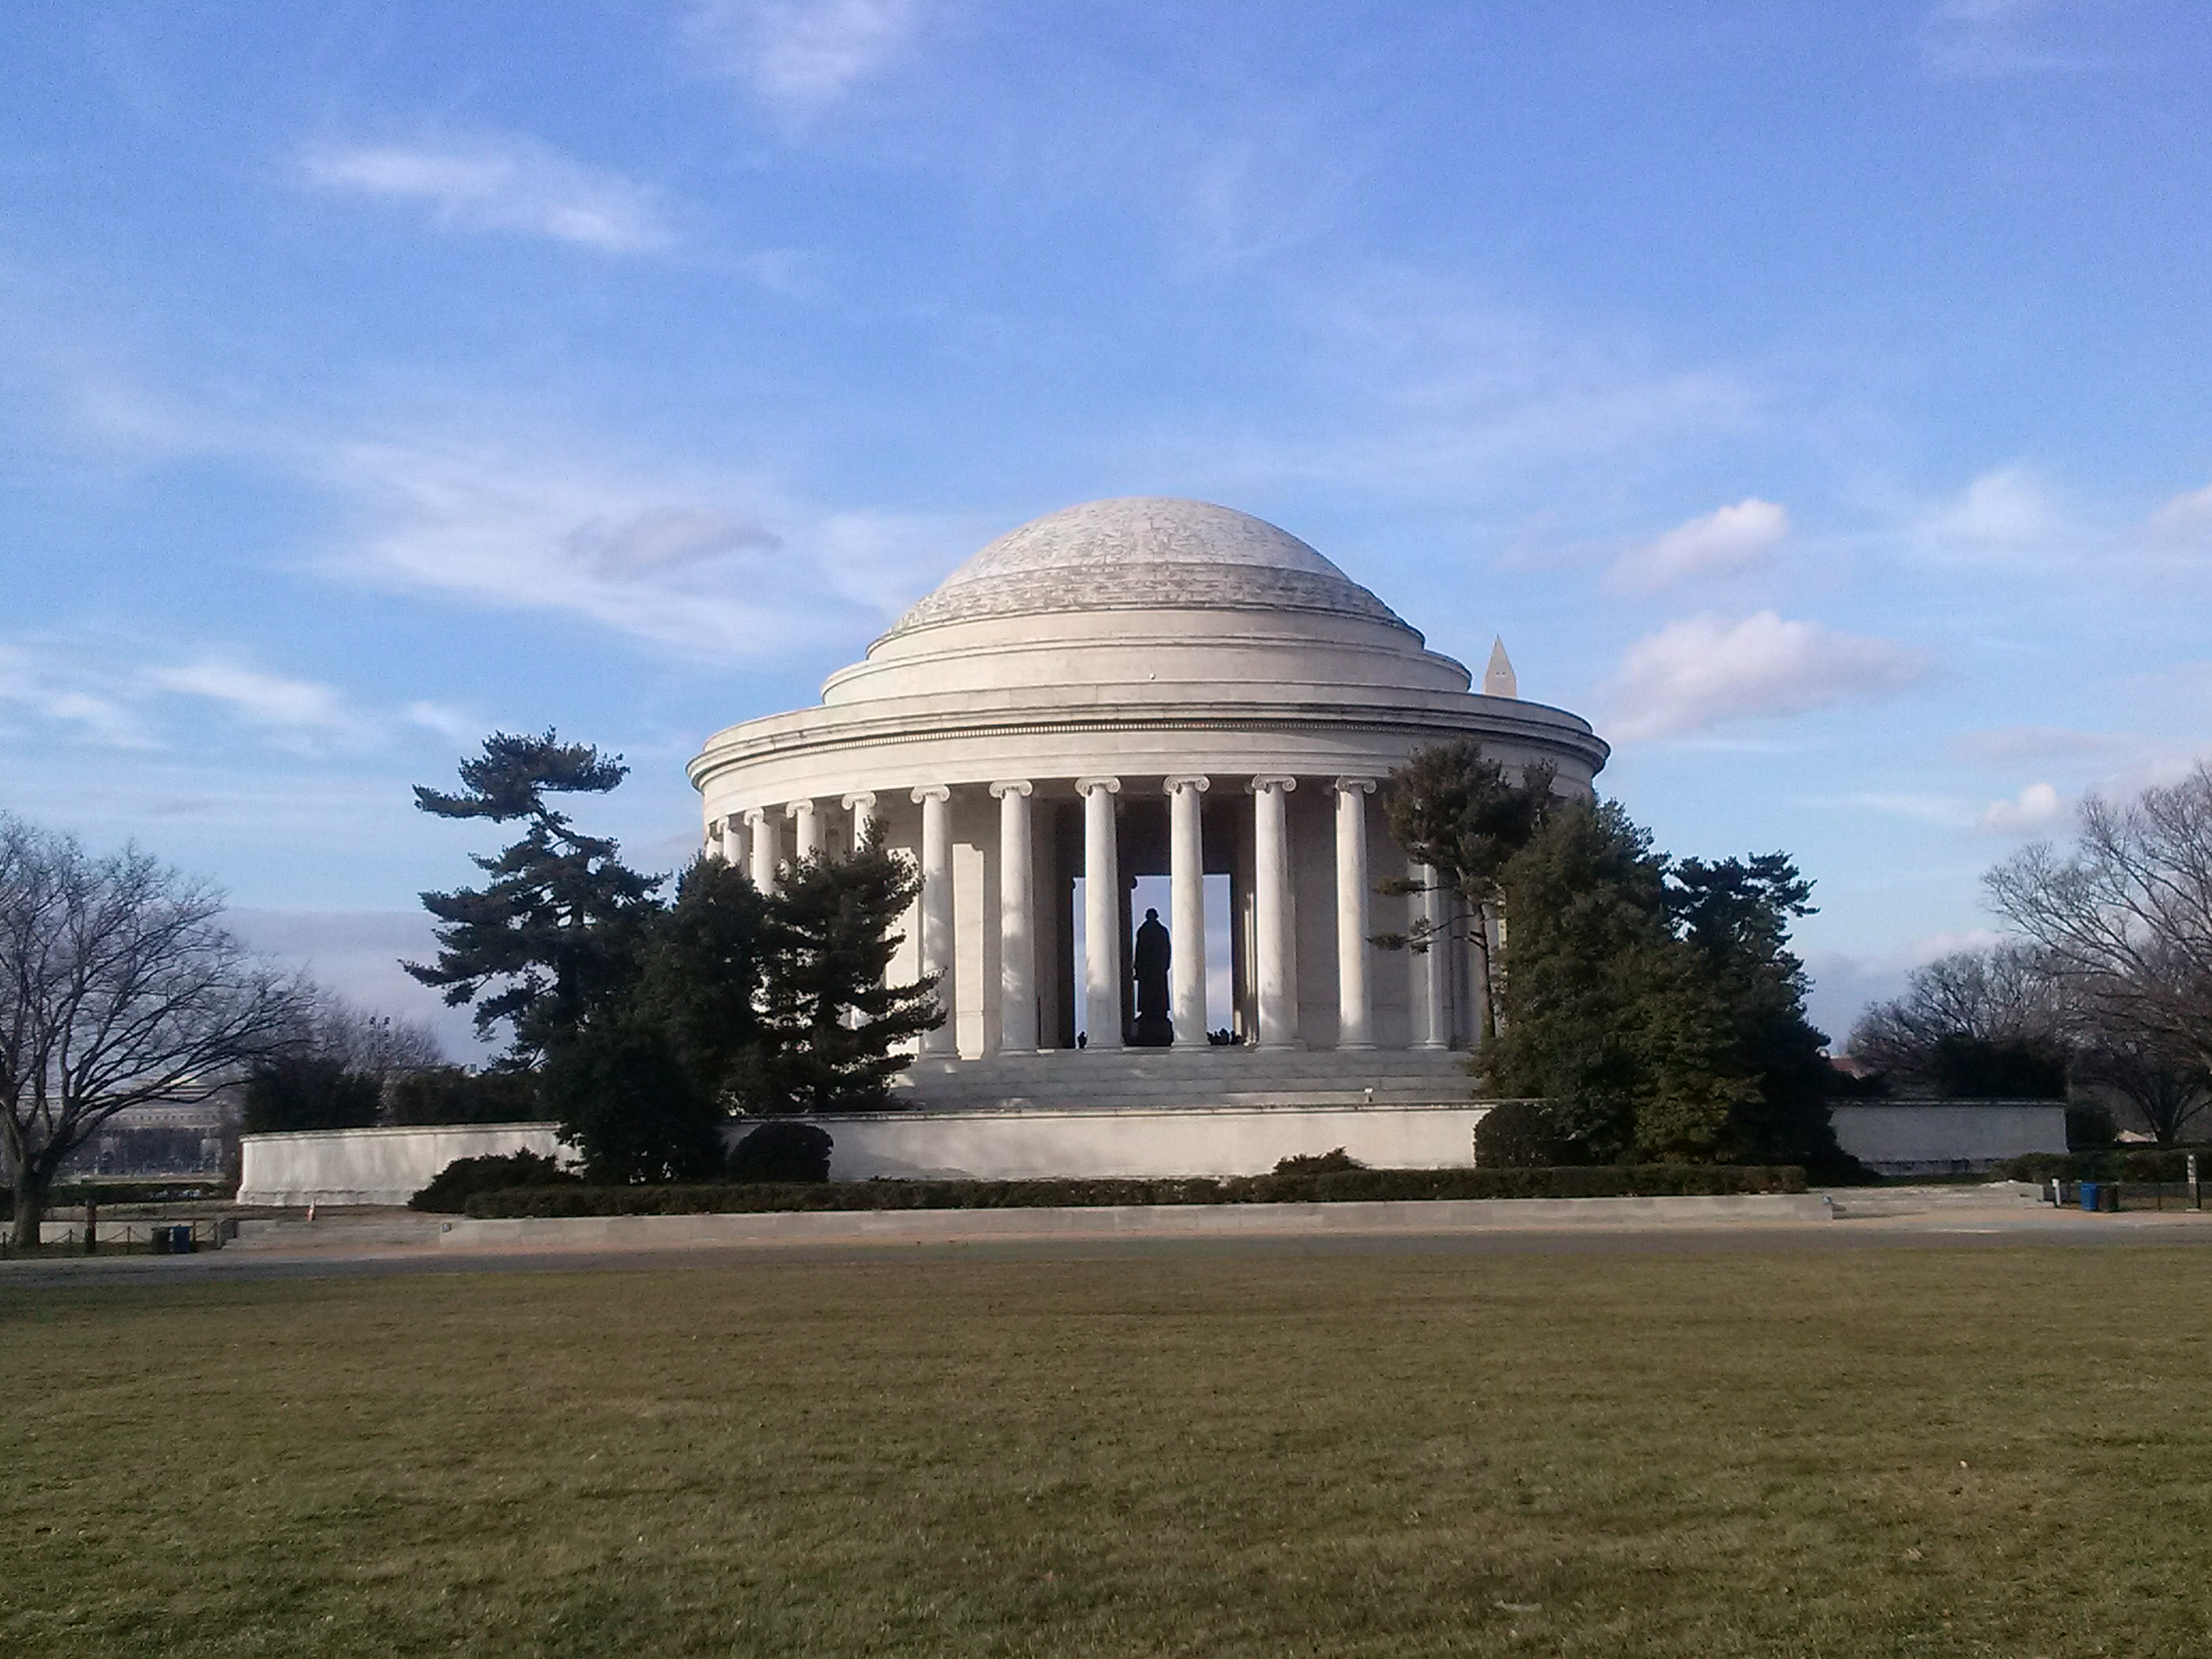 Thomas_Jefferson_memorial_spanish_tour_Washington_DC